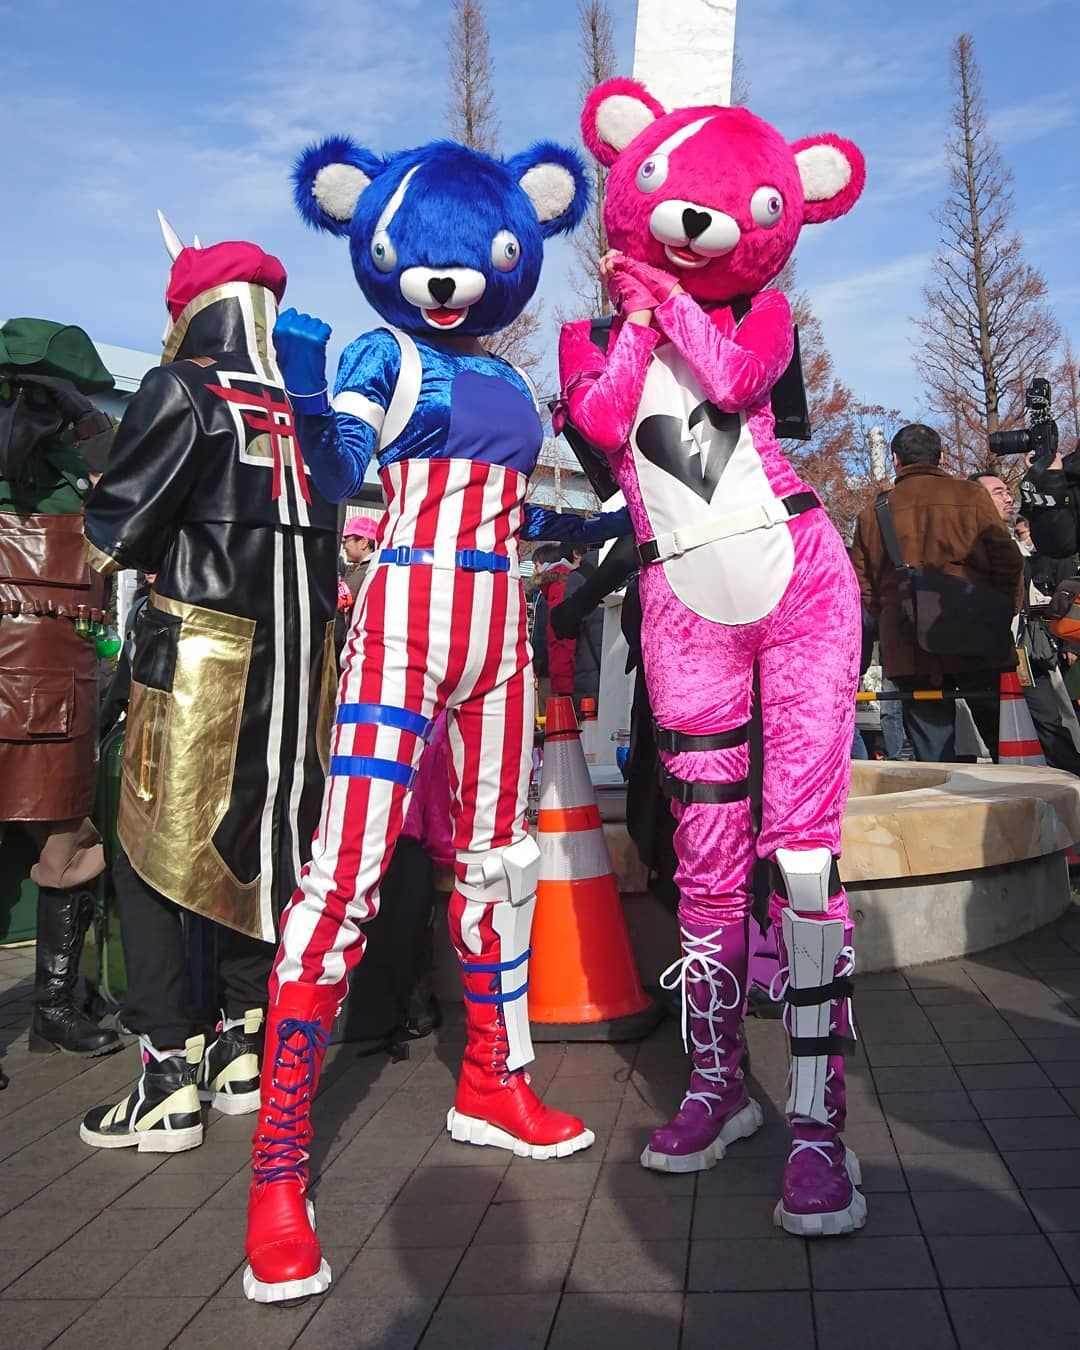 Cuddle Team Leader Fireworks Team Leader Cosplay Characters Fortnite Character Inspiration